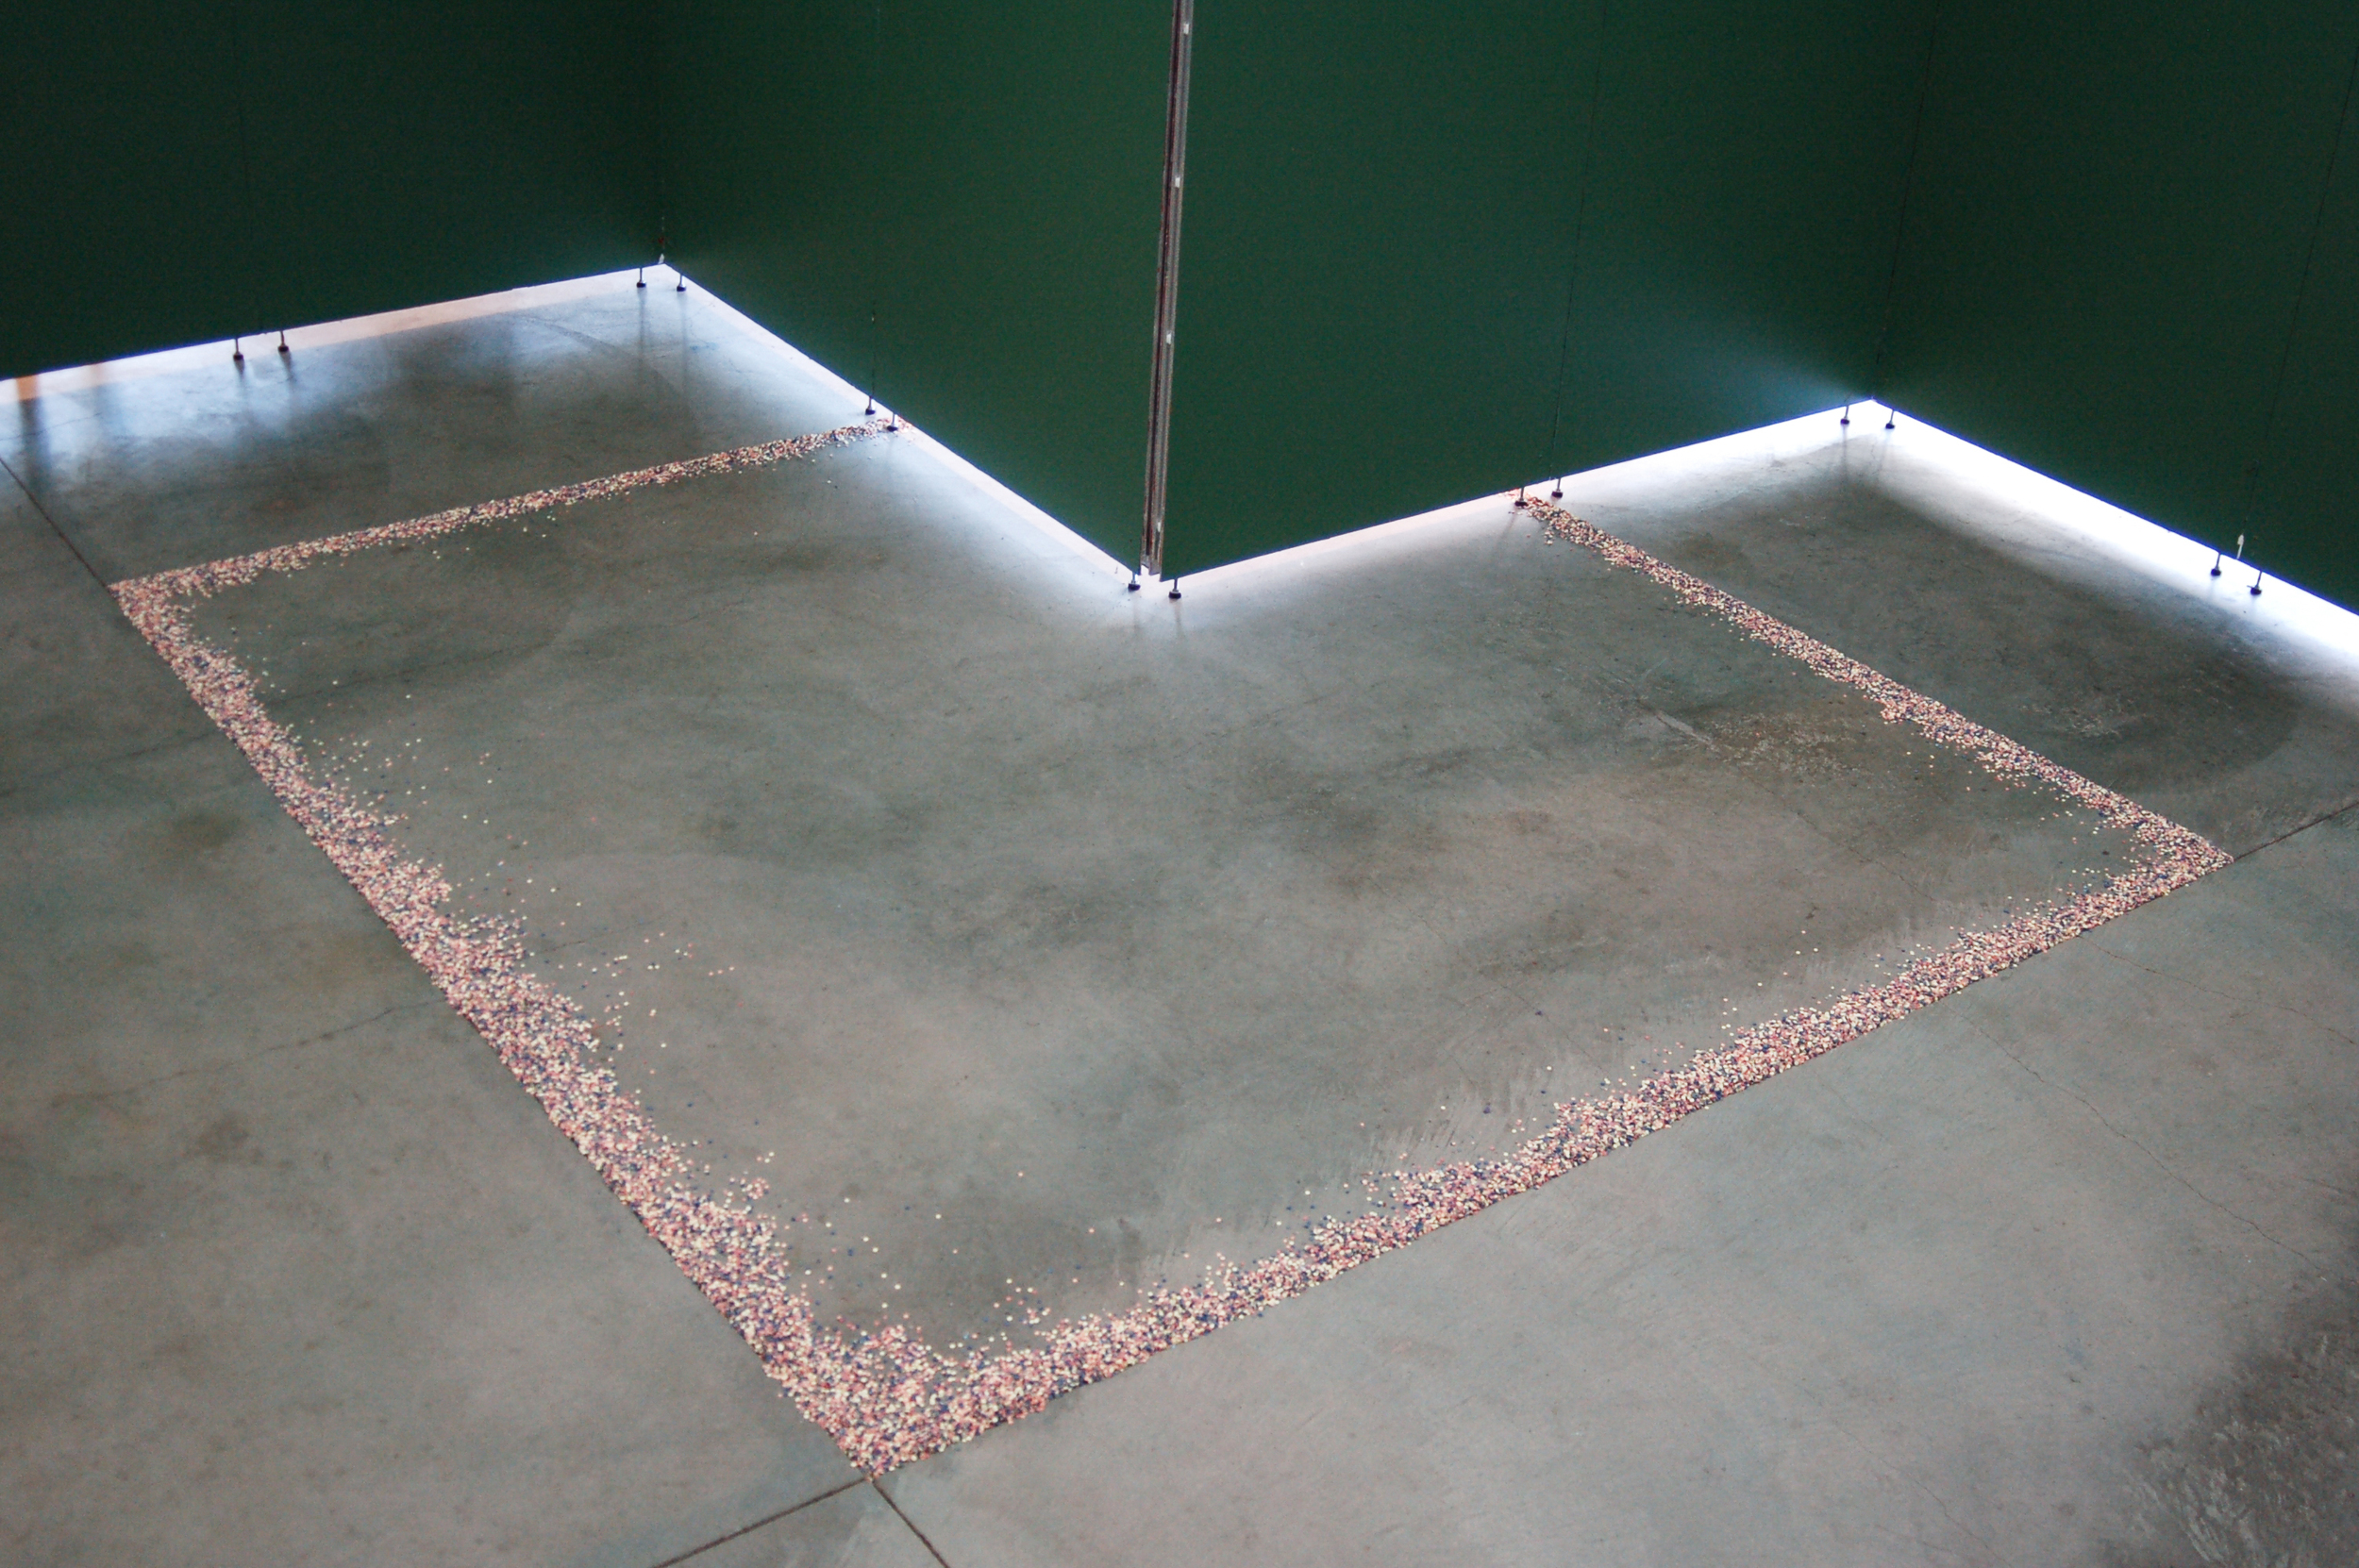 untitled.  Custom Fabricated Porcelain Tape-Cast with Mason Stains, Concrete Floor Scoring, removable wall dividers. Saginaw Art Museum, 2015